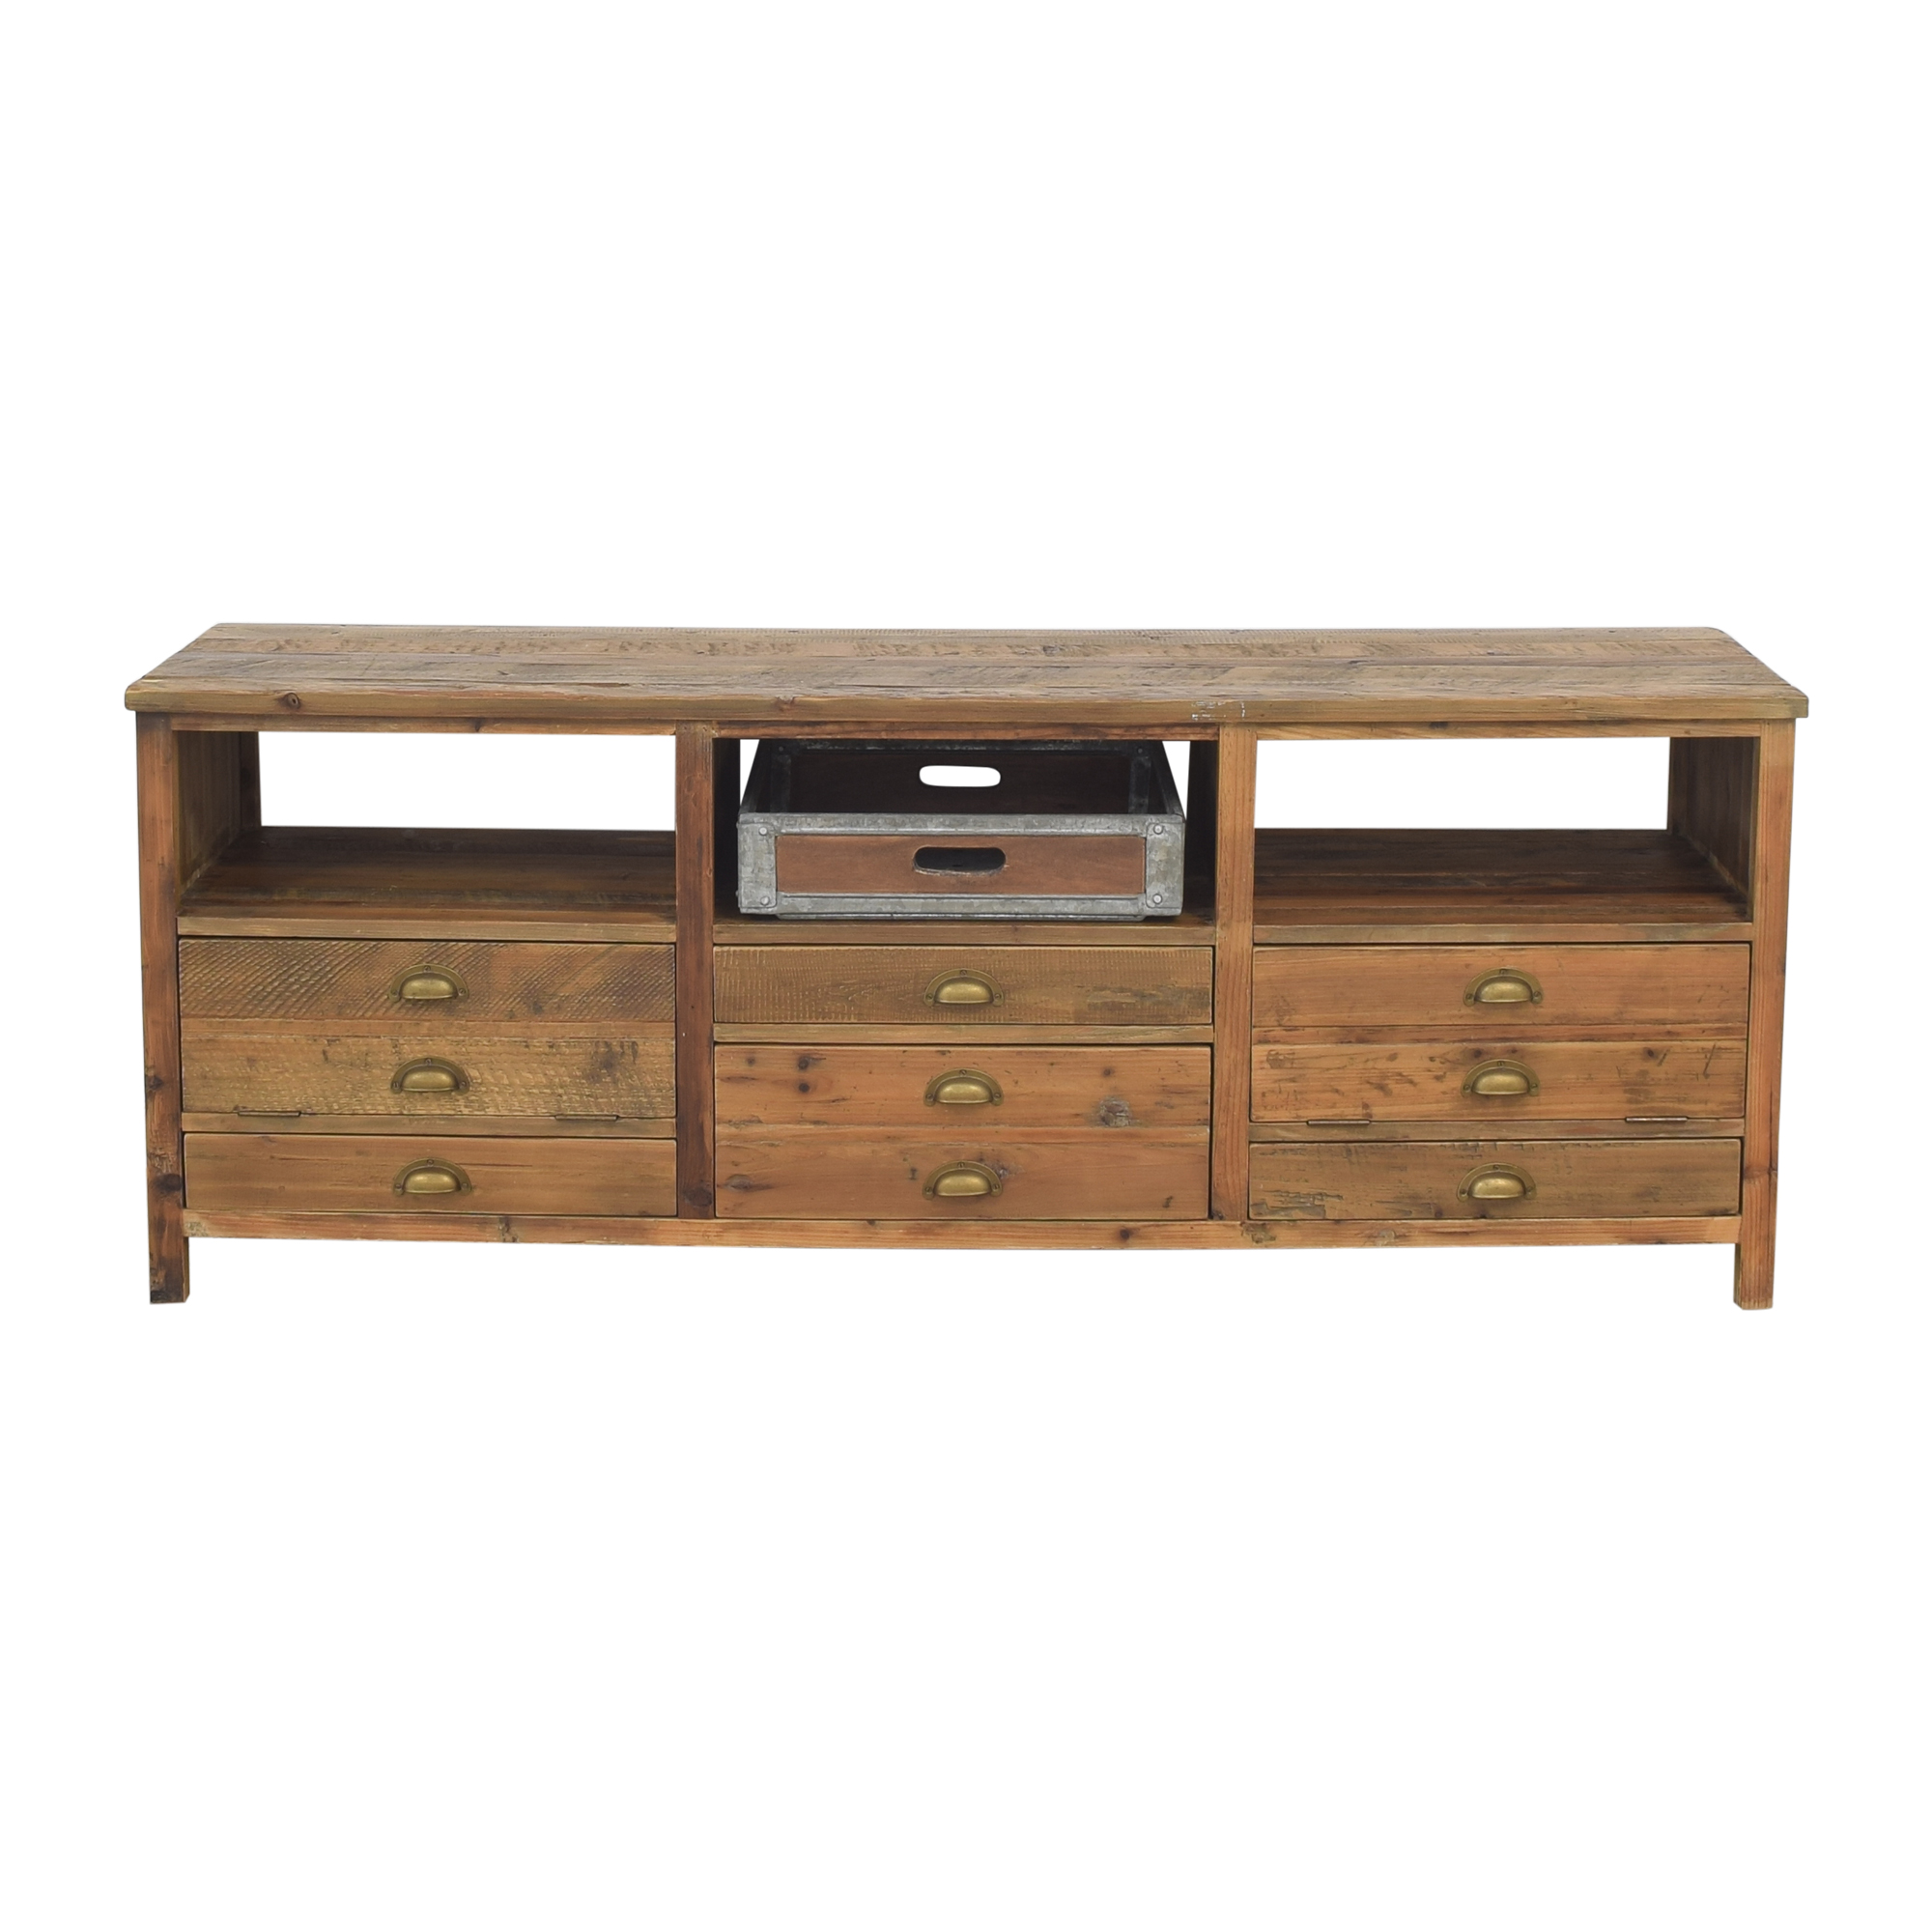 Anthropologie Anthropologie Illusoria Media Console dimensions